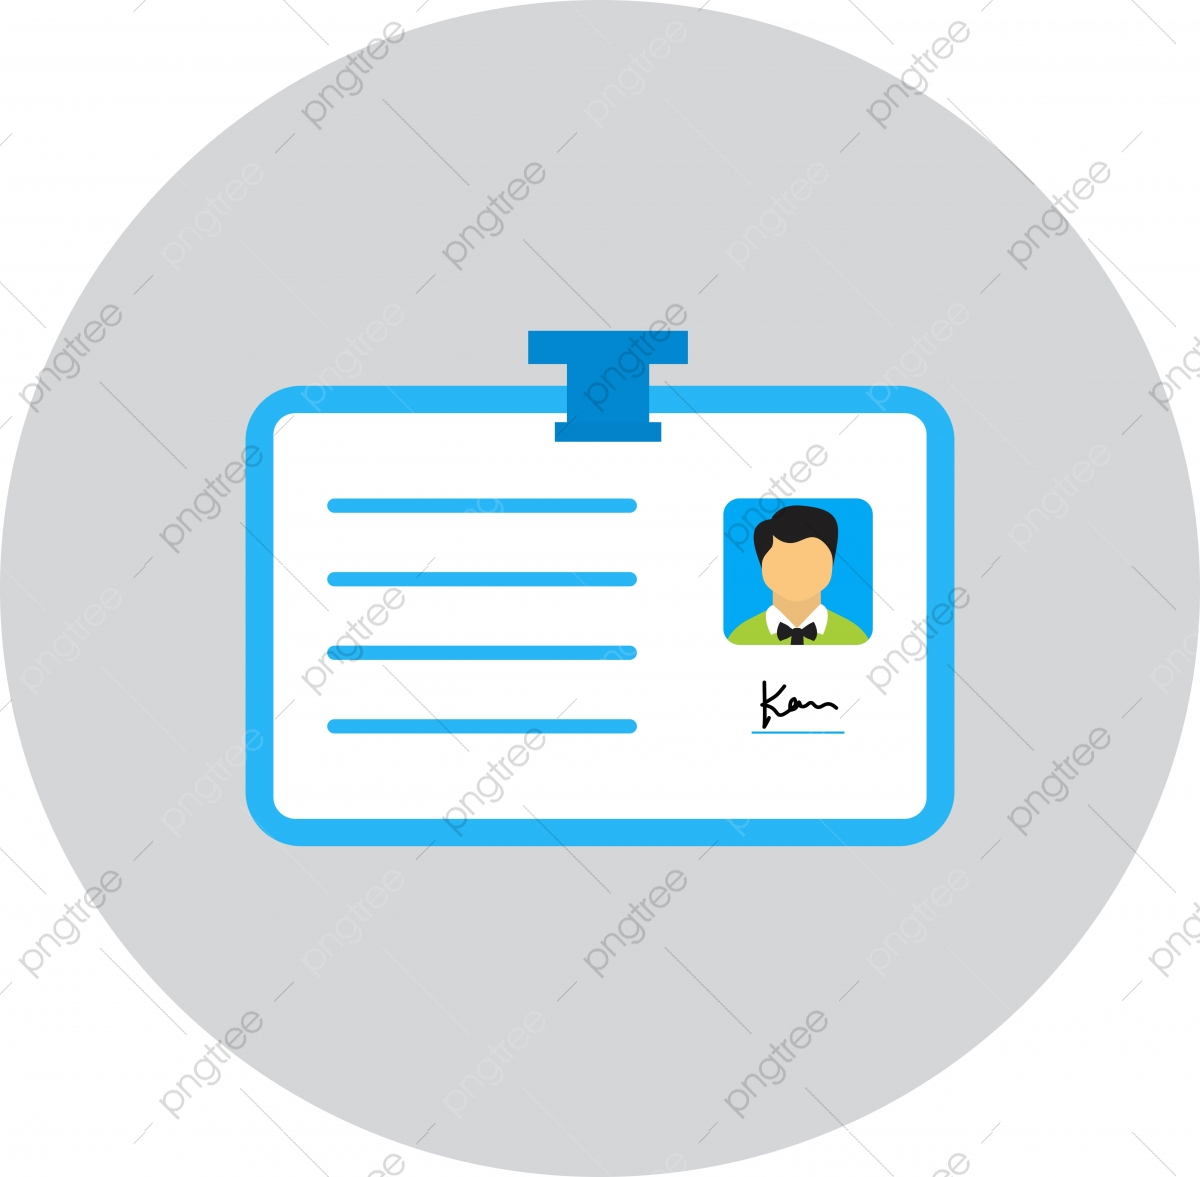 vector identity card icon card icons identity icons identity card icon png and vector with transparent background for free download https pngtree com freepng vector identity card icon 4888590 html